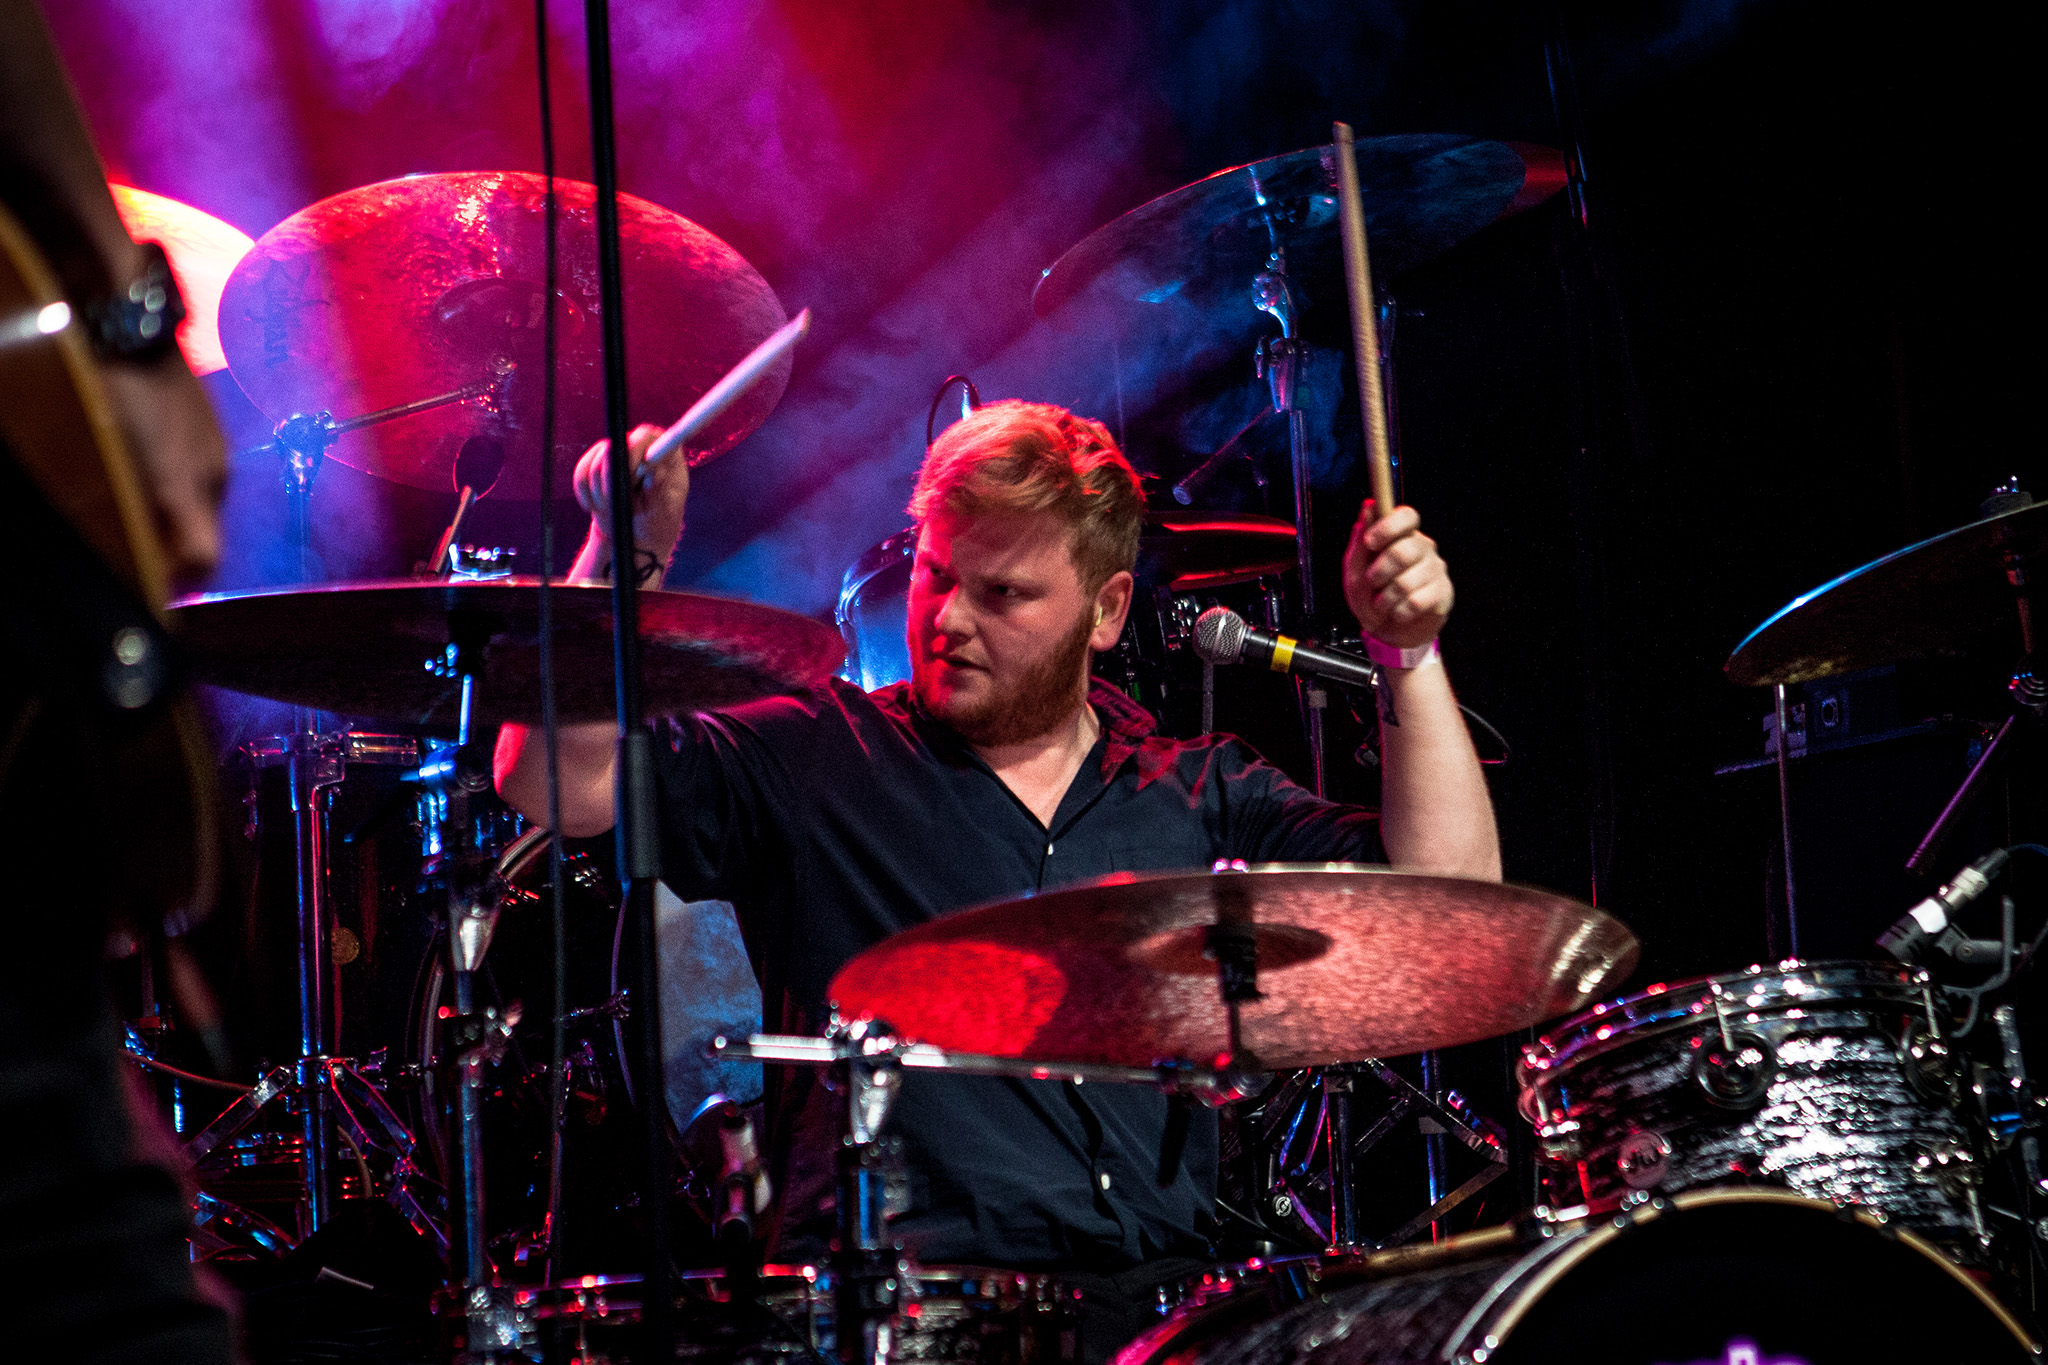 photo of the drummer from Bad Touch by Andras Paul